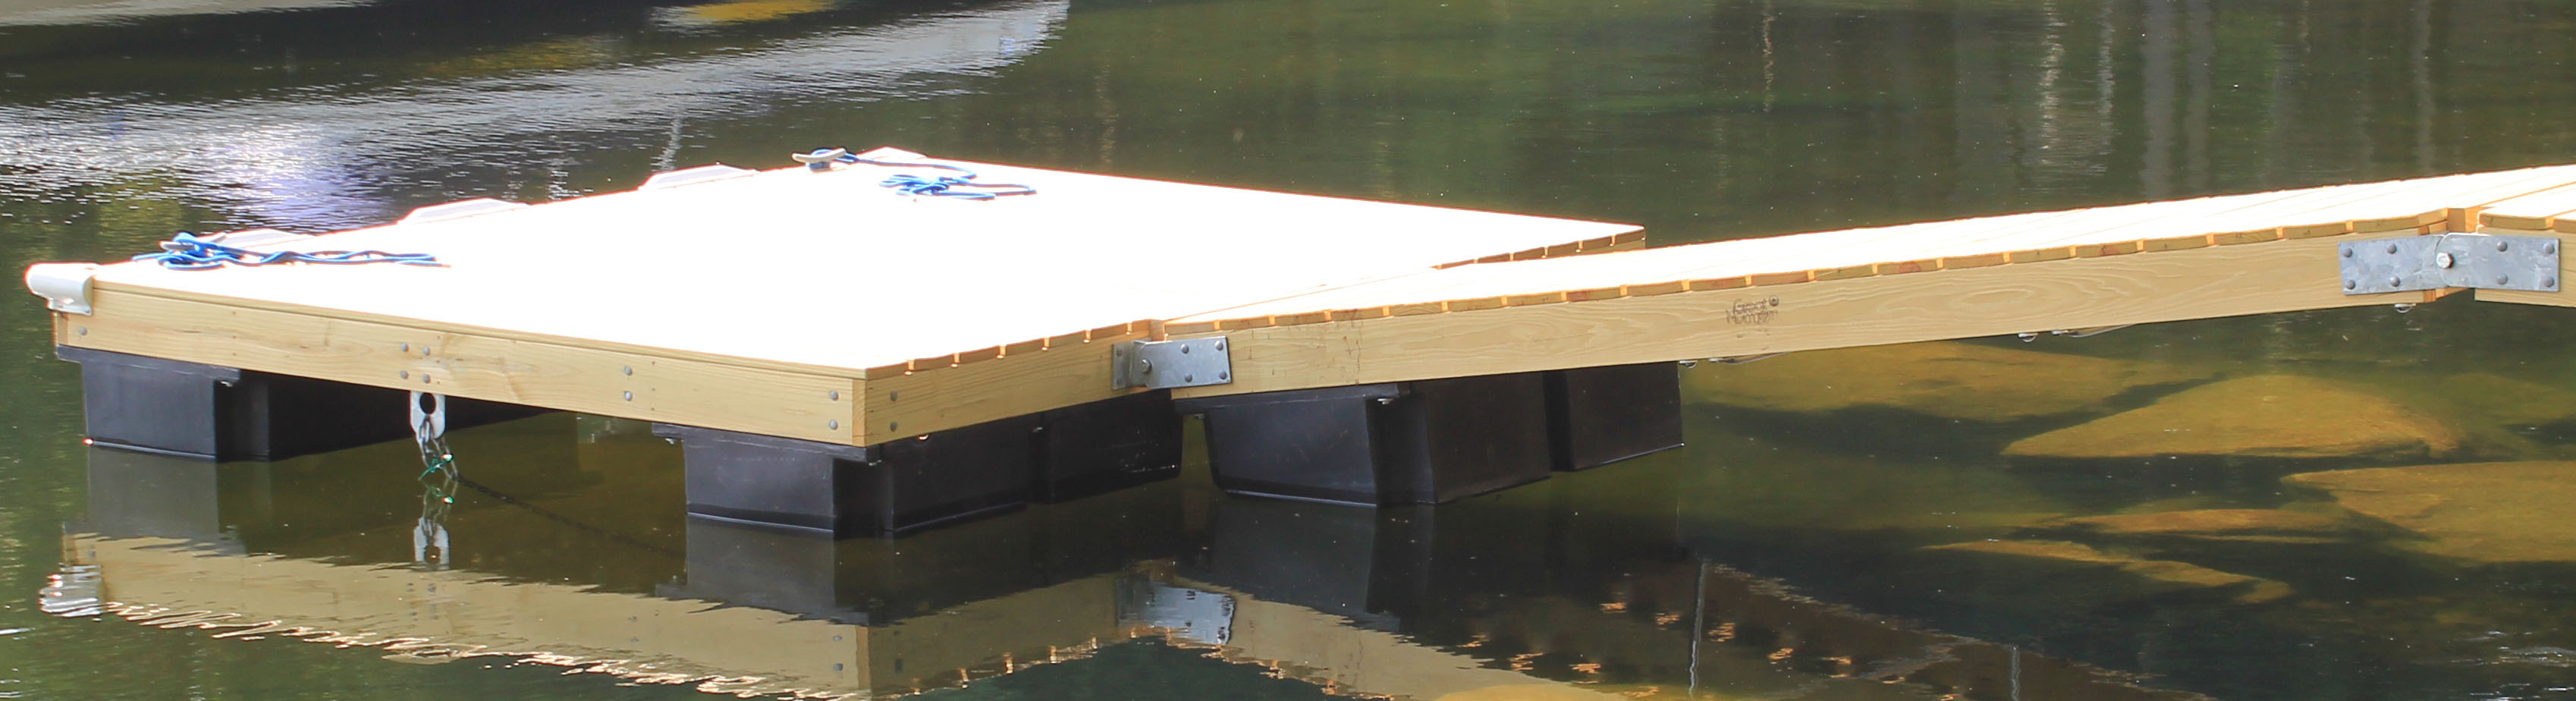 Dock Parts Floating u0026quot;Add to Cartu0026quot; - Boat Docks